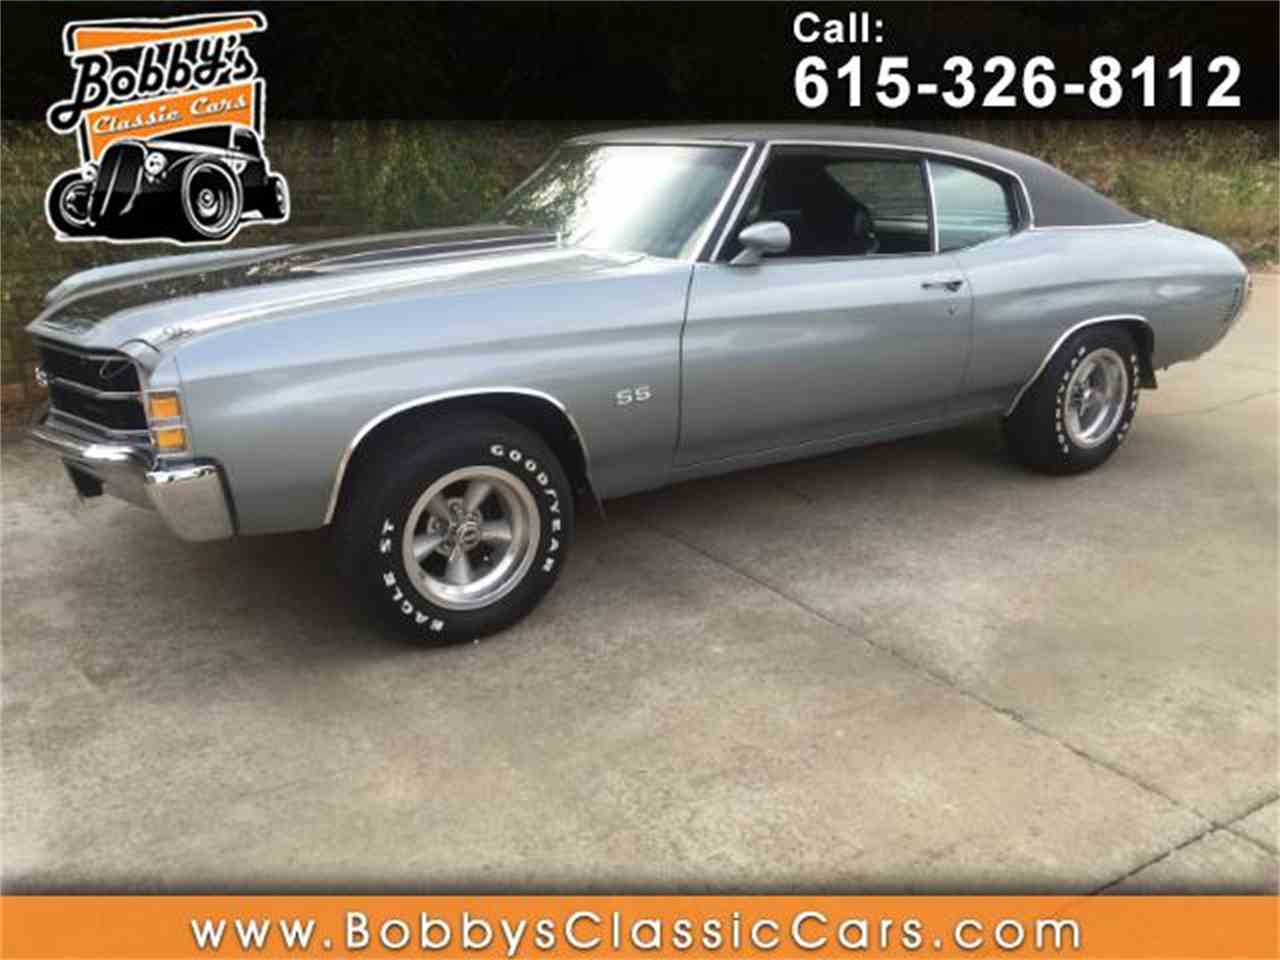 1971 Chevrolet Chevelle for Sale - CC-921199